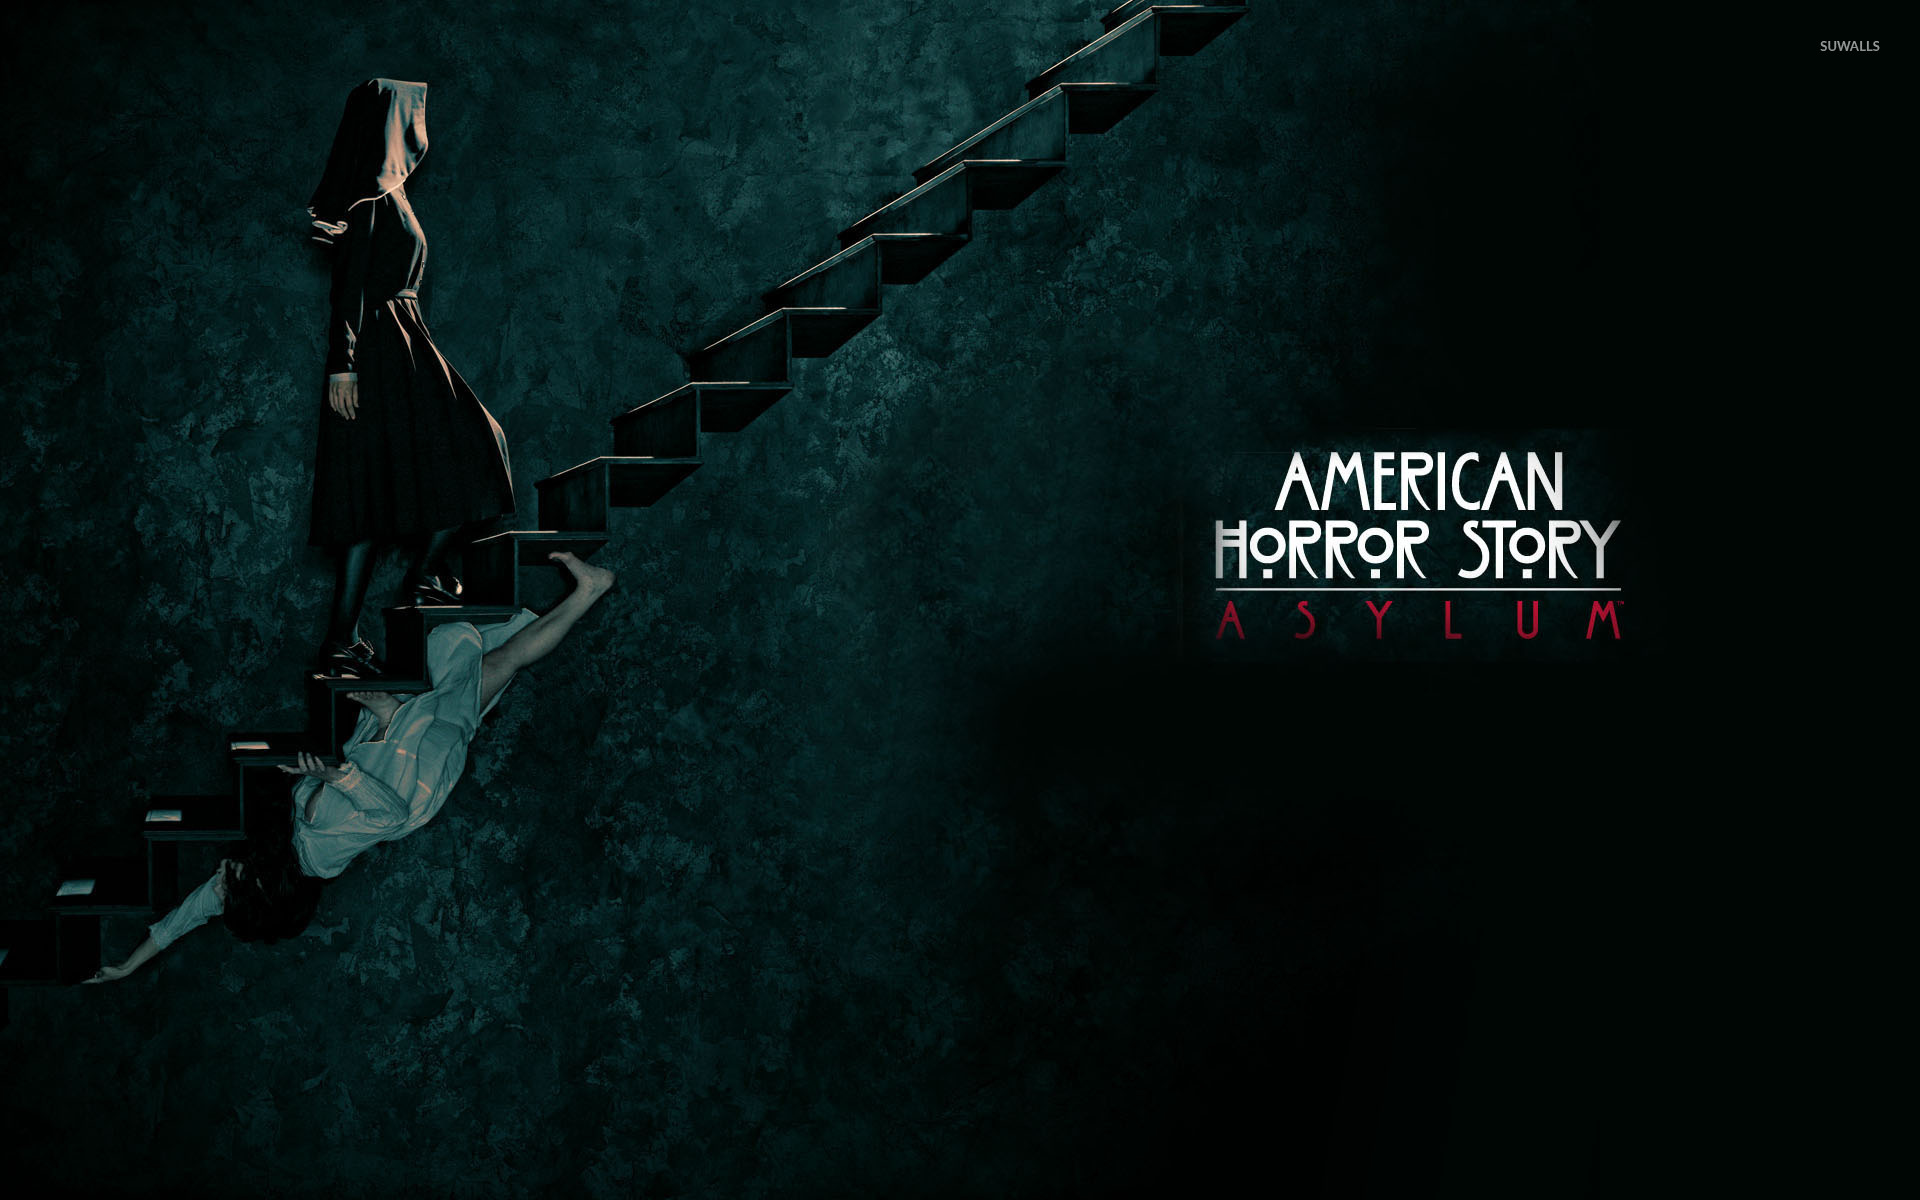 American Horror Story   Asylum [2] wallpaper   TV Show wallpapers 1920x1200